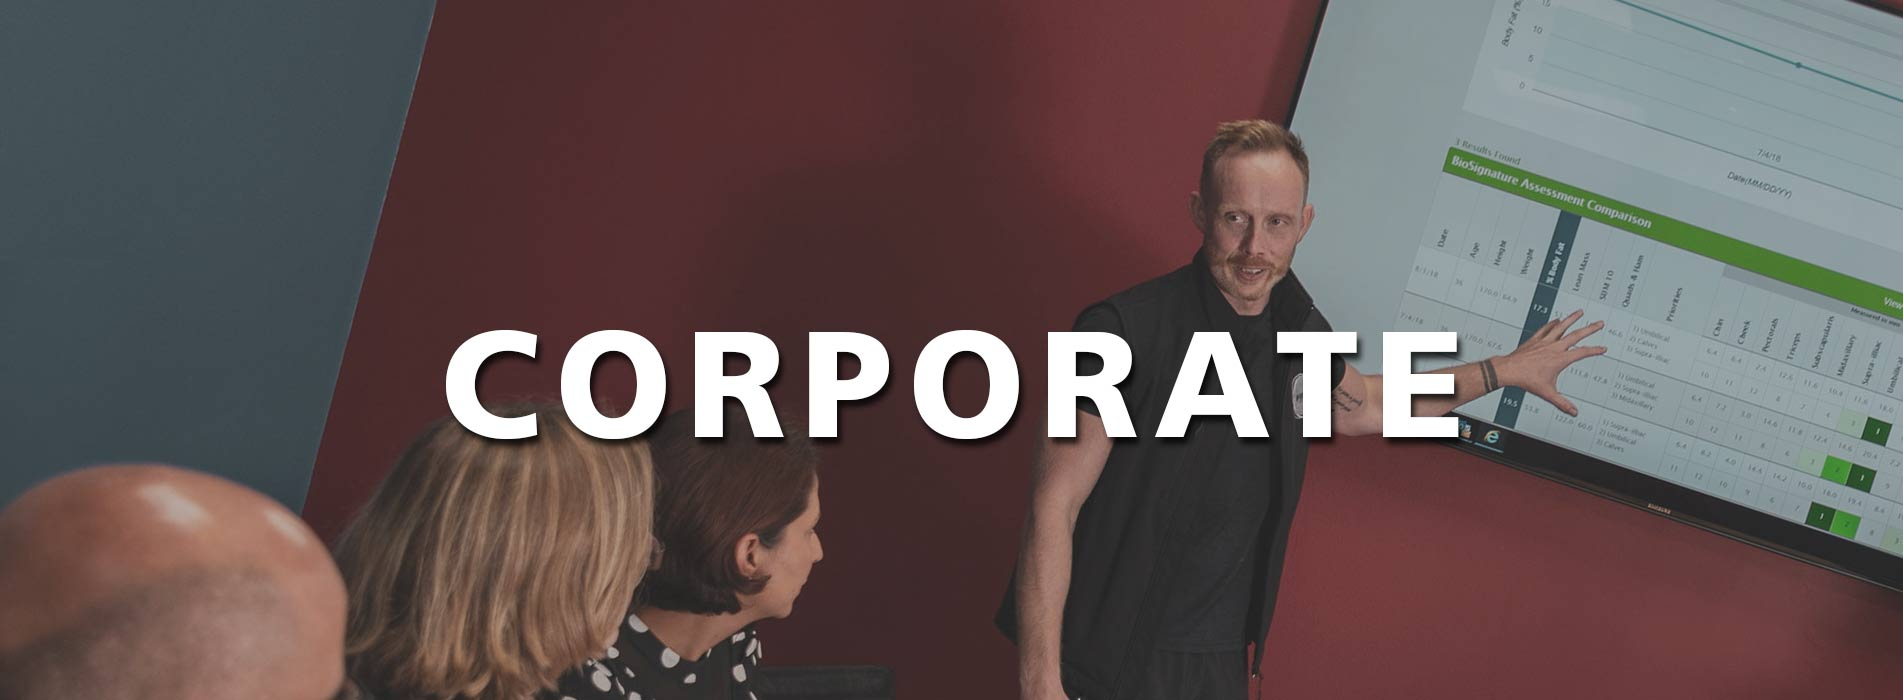 corporate-banner-2-mob